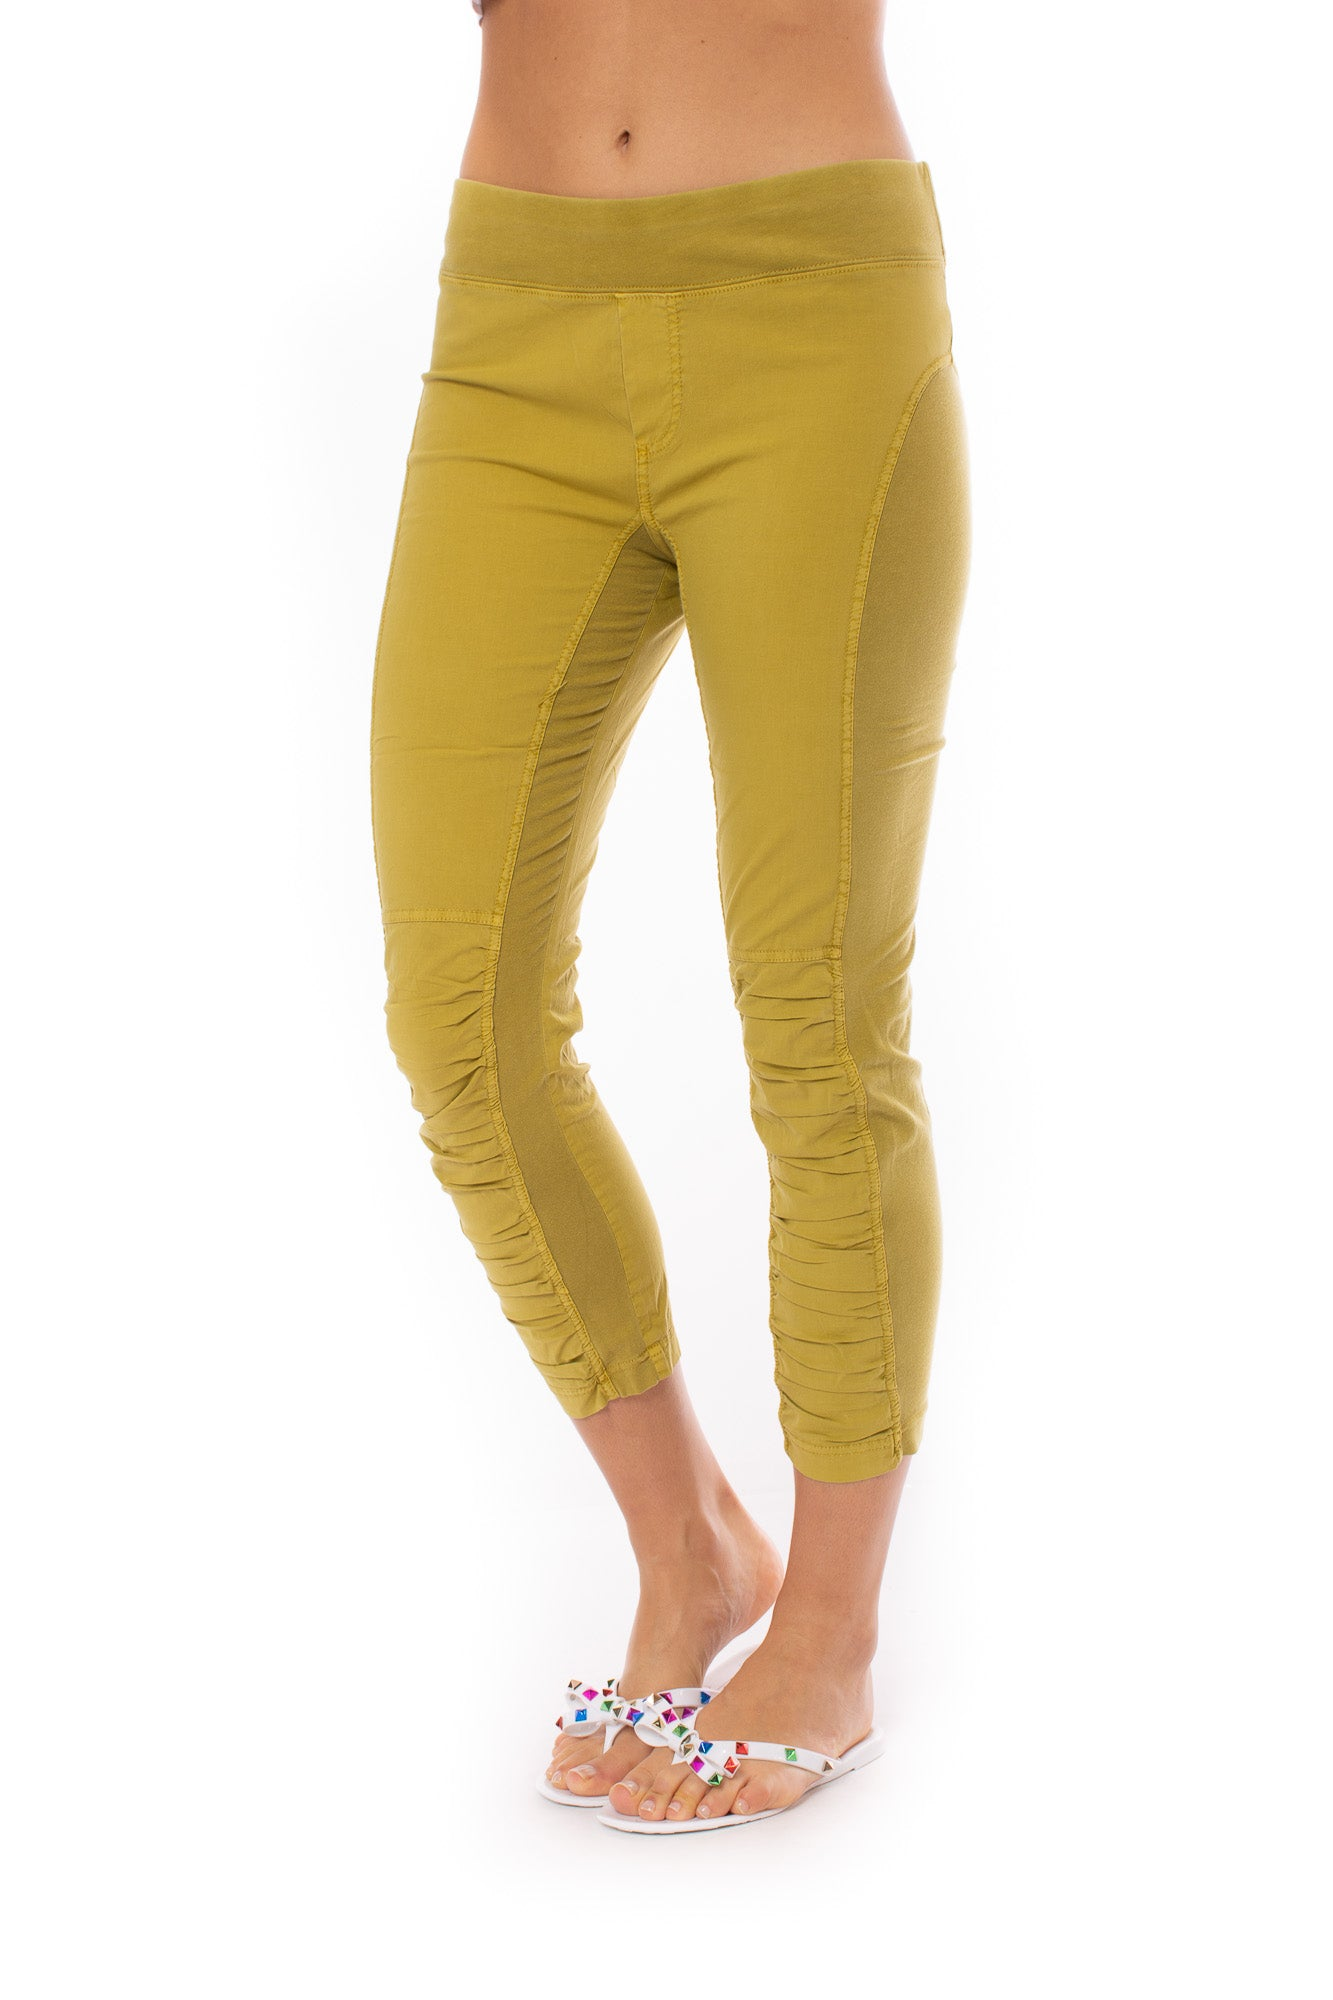 Wearables - Jetter Cropped Pant (20987w, Macaw)